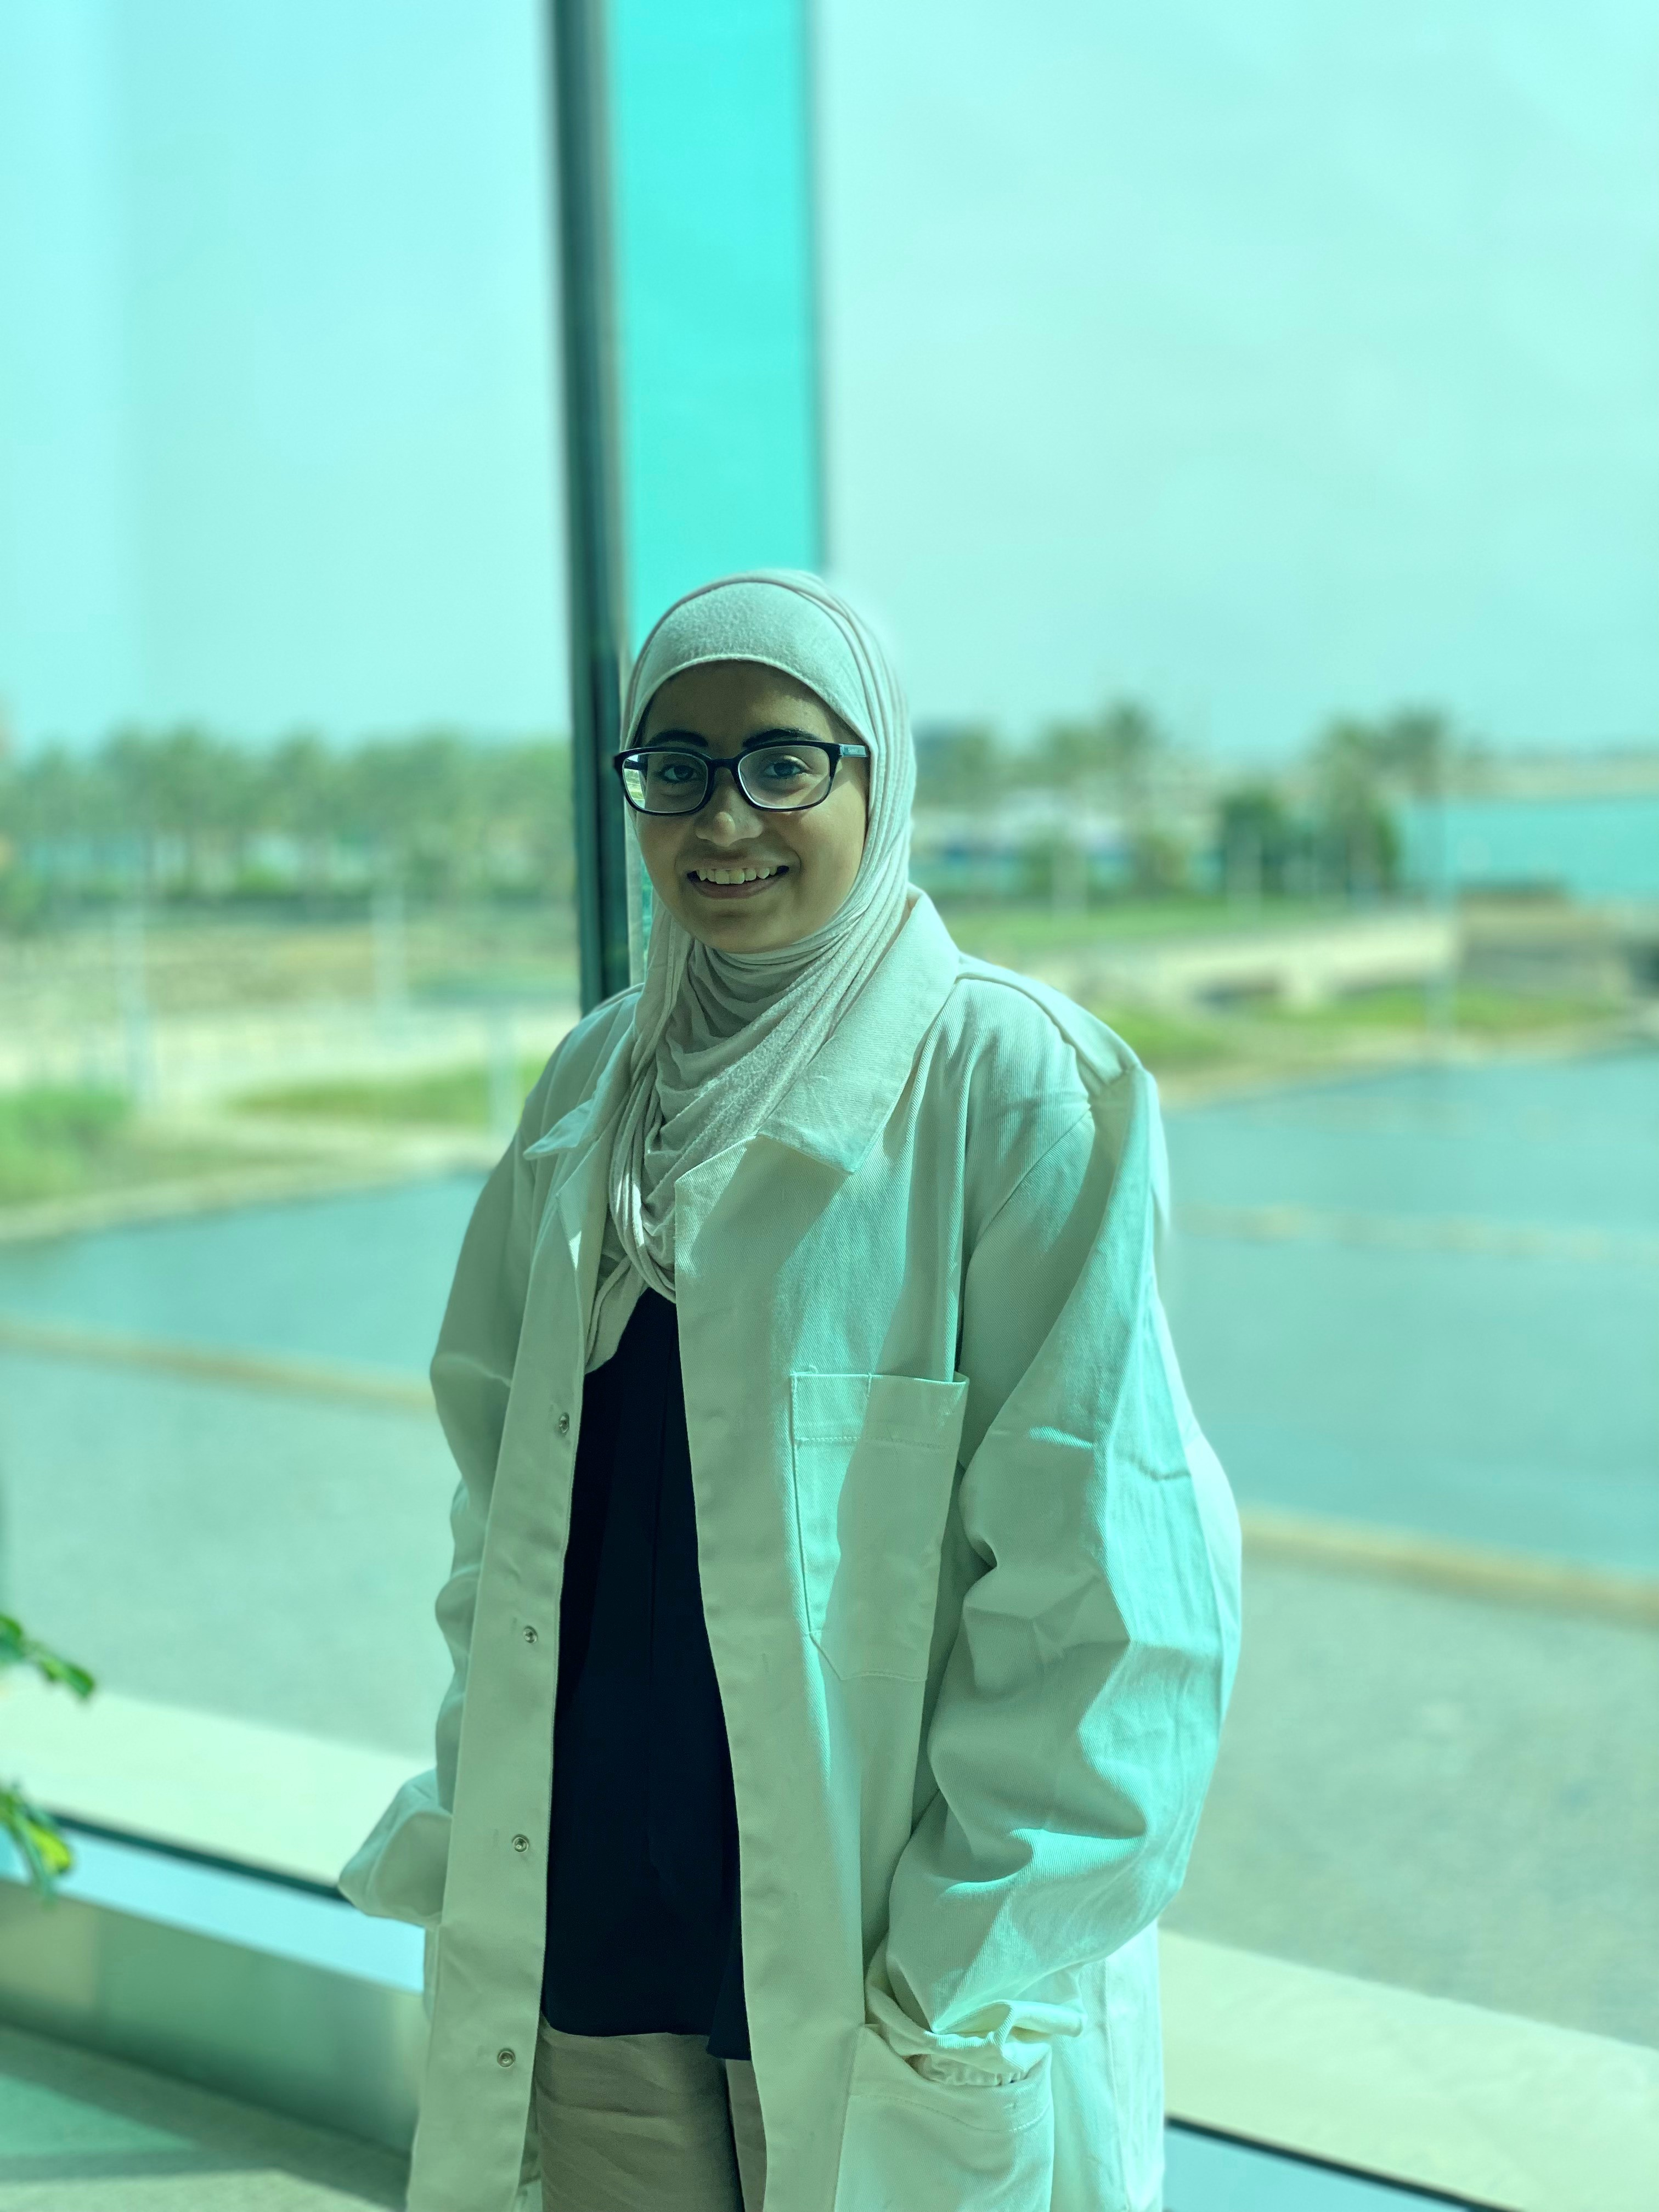 Summer Research at KAUST